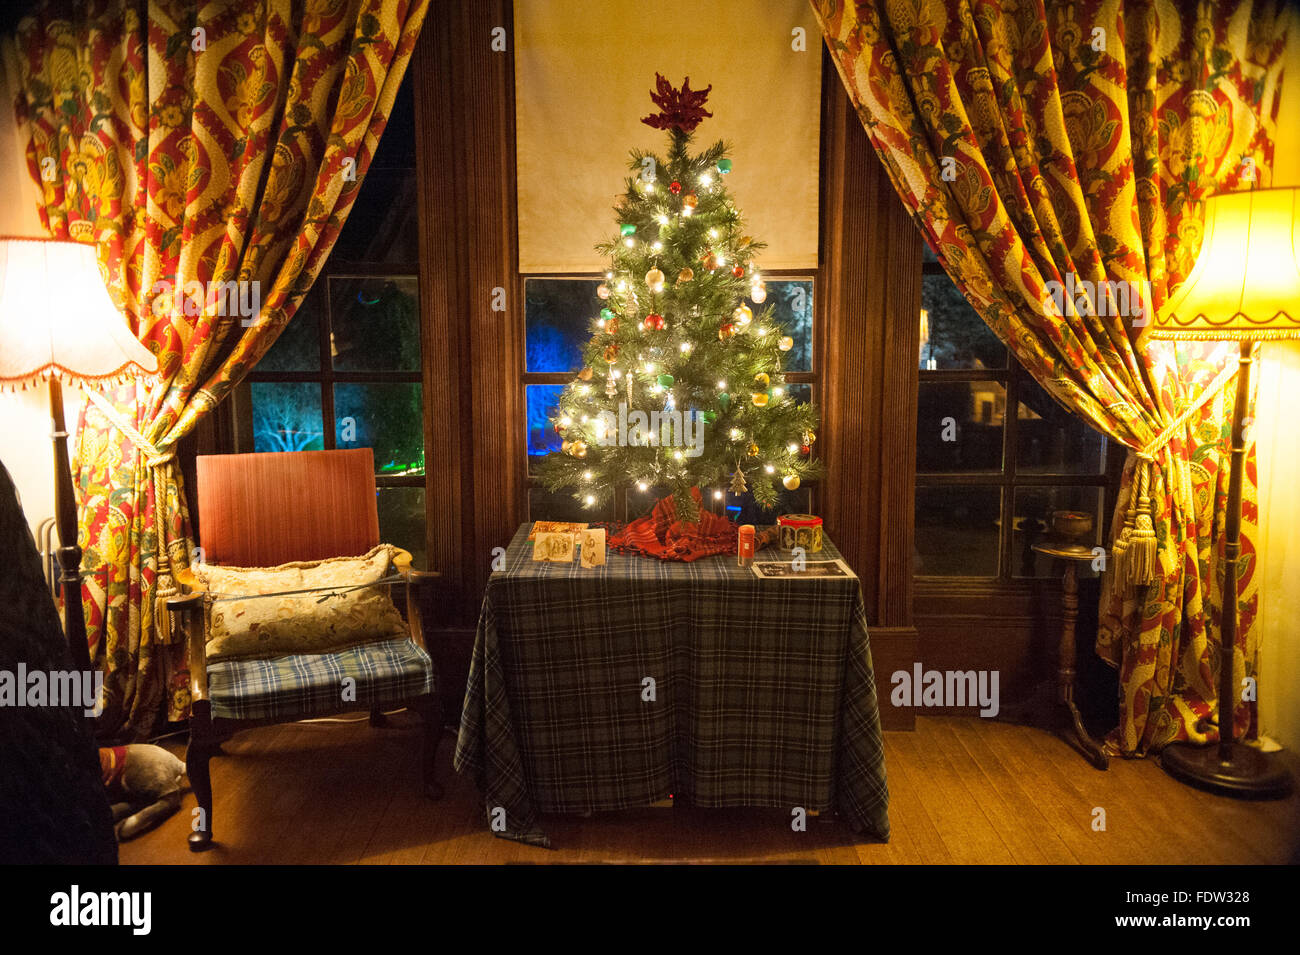 Christmas tree with presents in Crathes Castle in Aberdeenshire, Scotland. - Stock Image